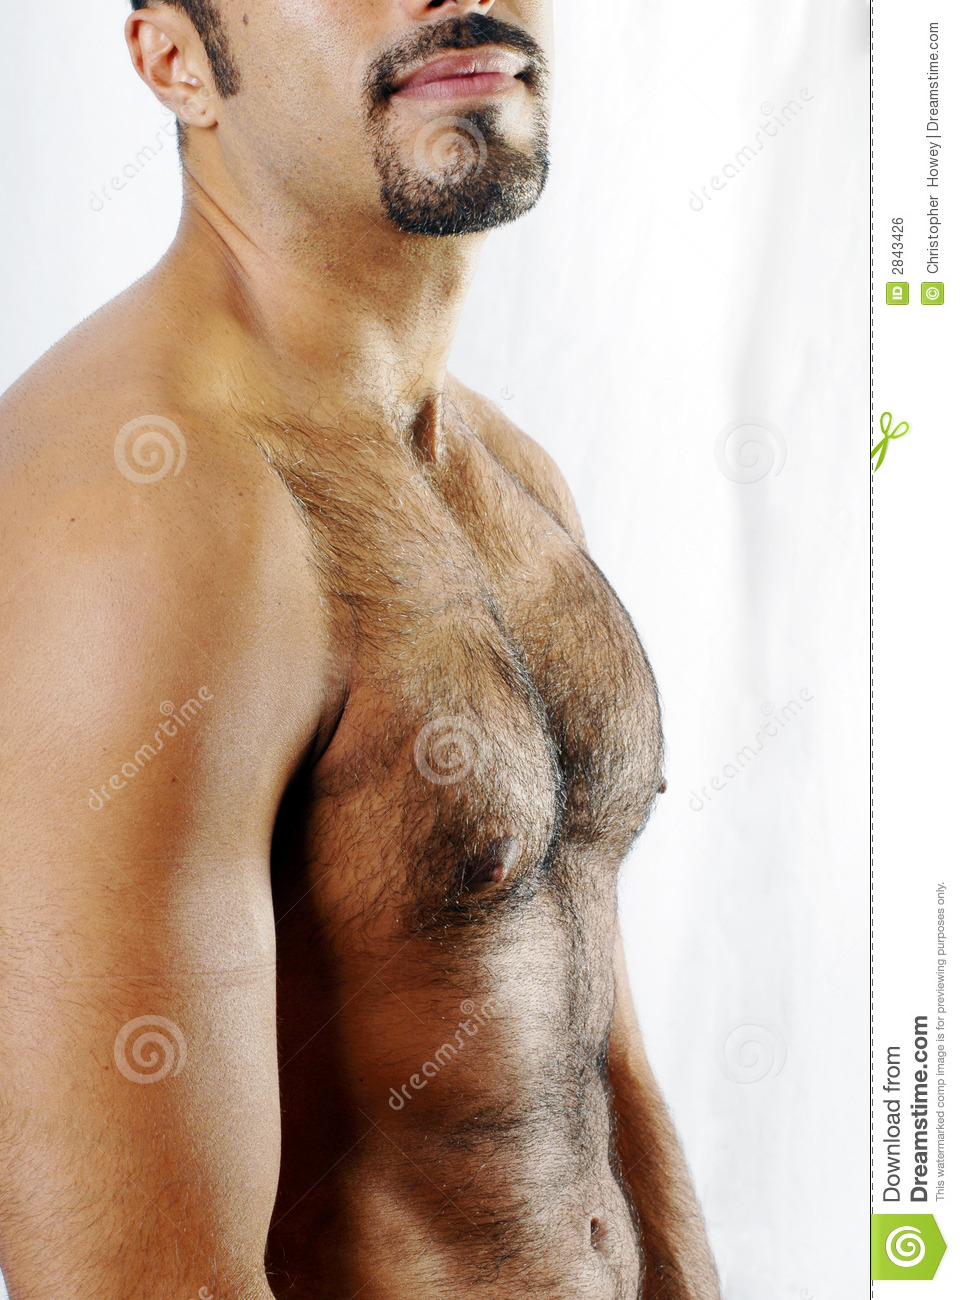 Muscles chest free hairy